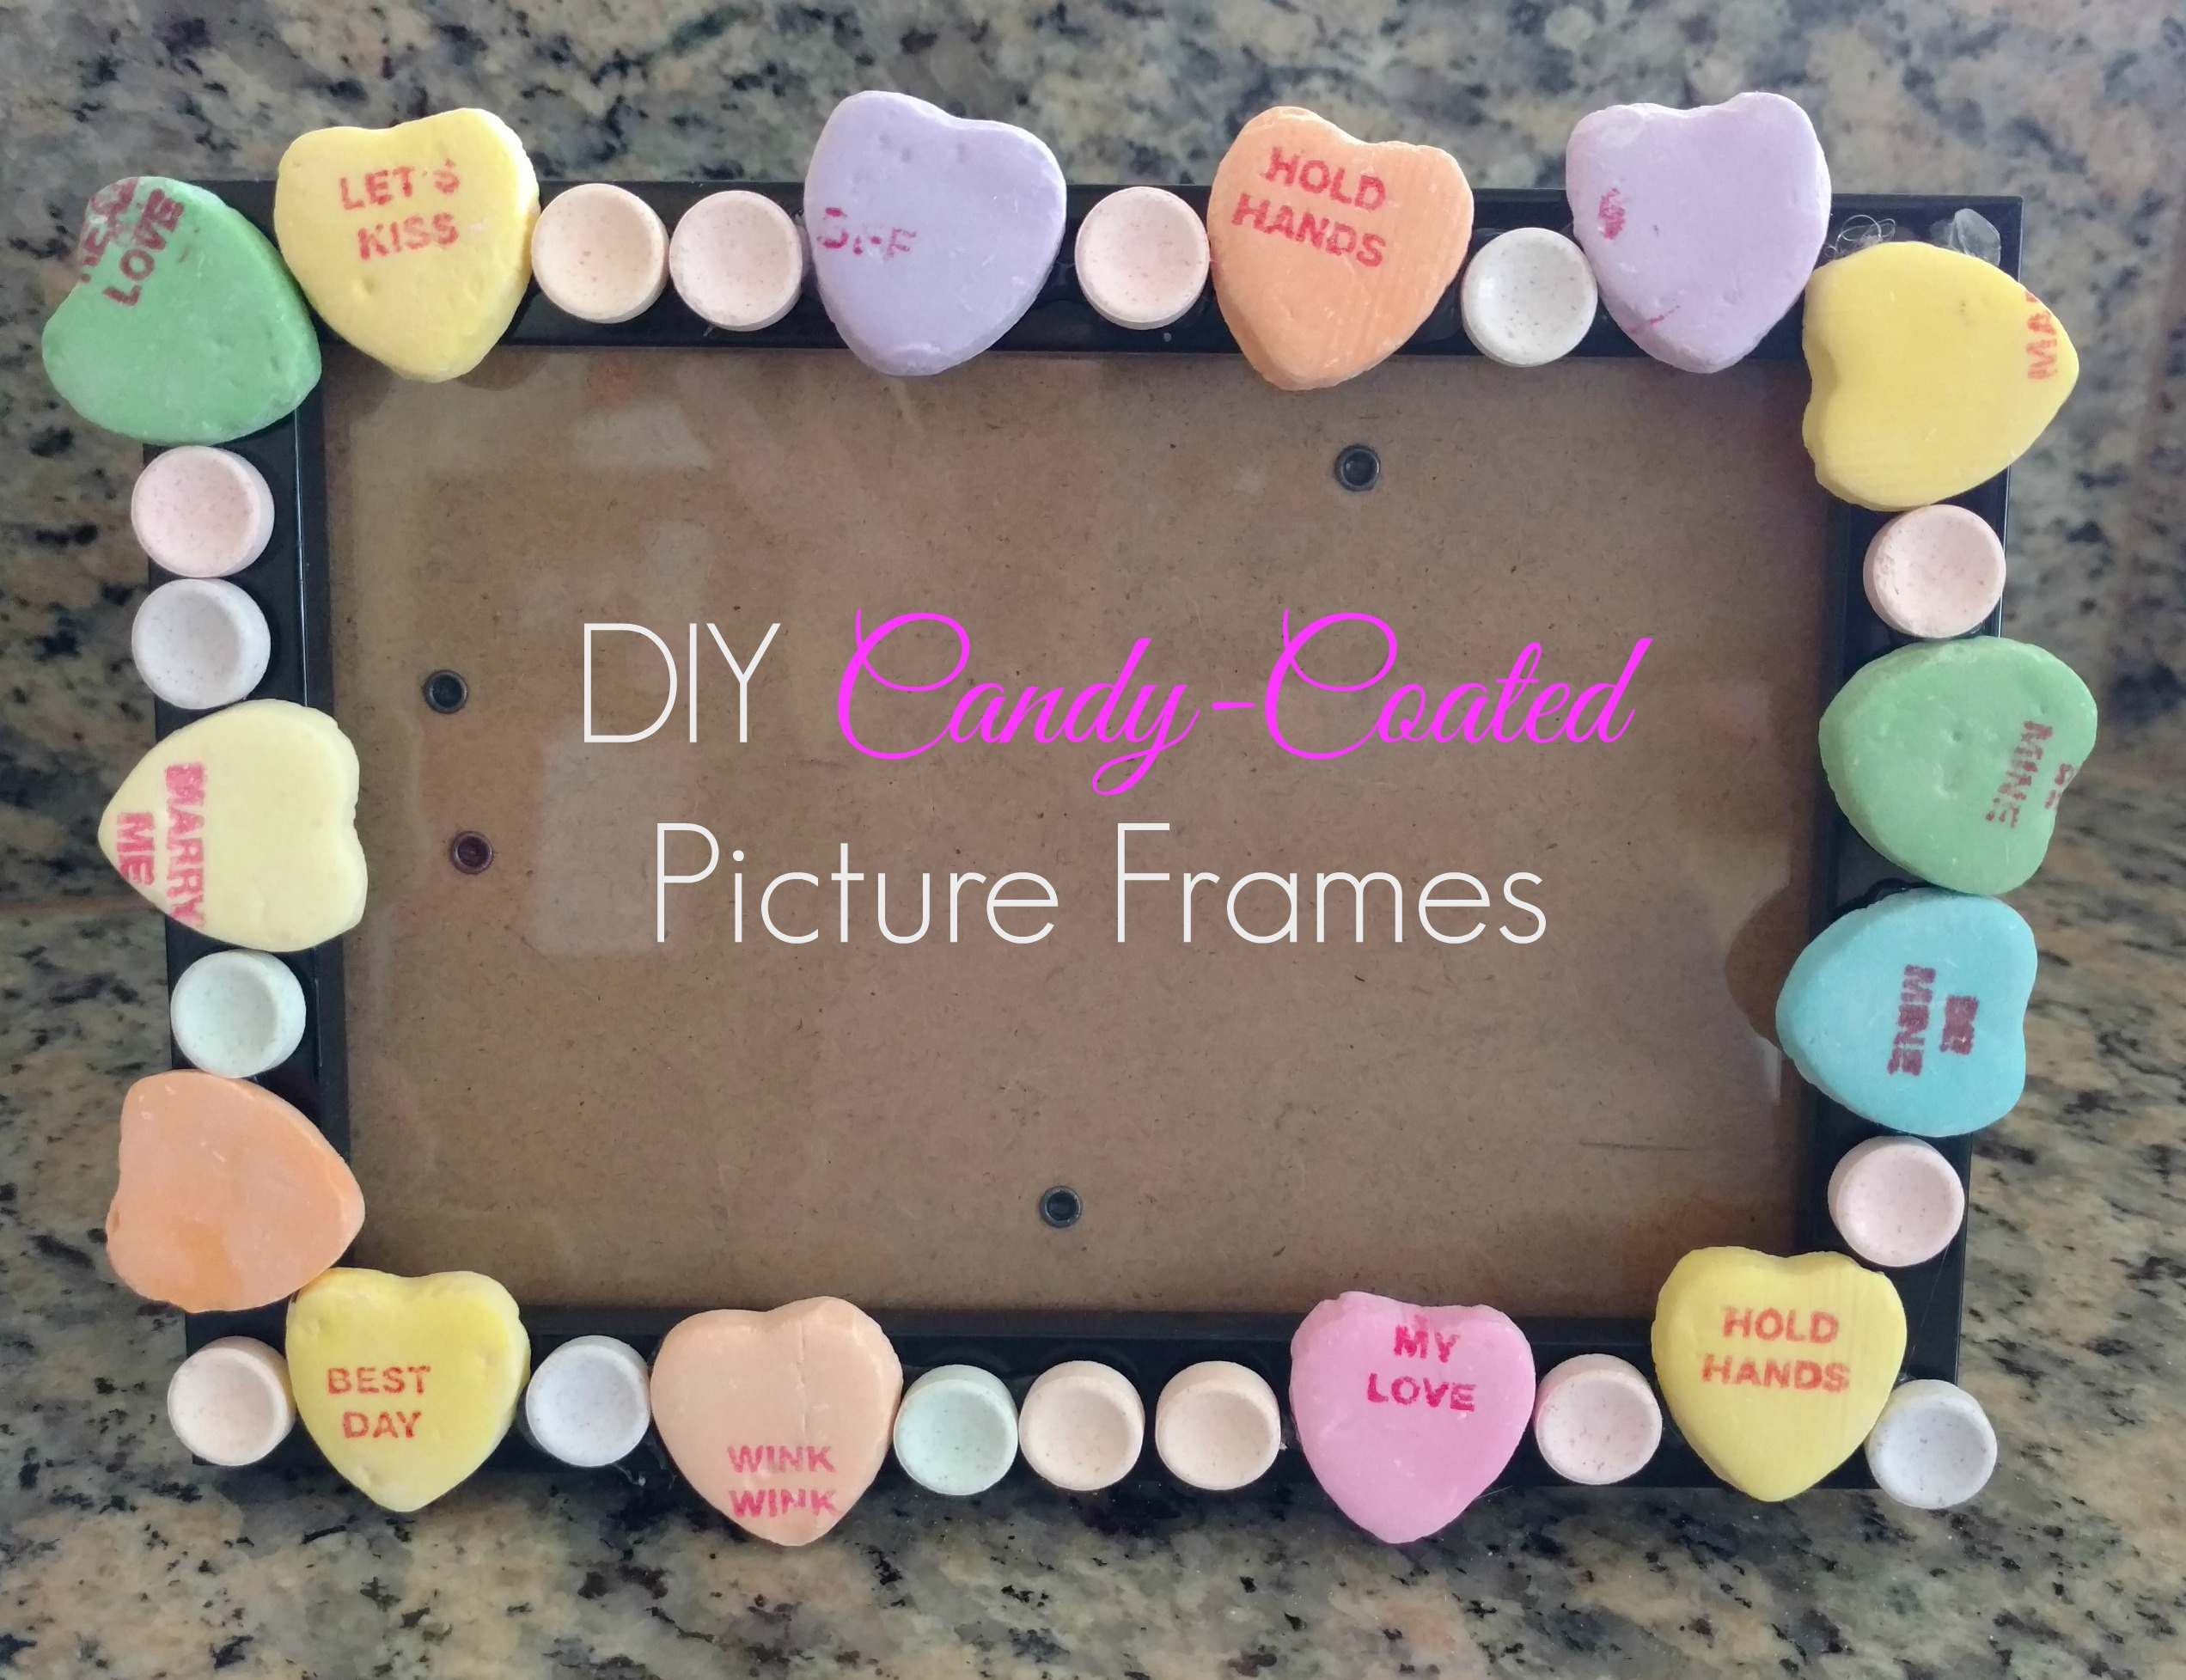 DIY Candy-Coated Picture Frames